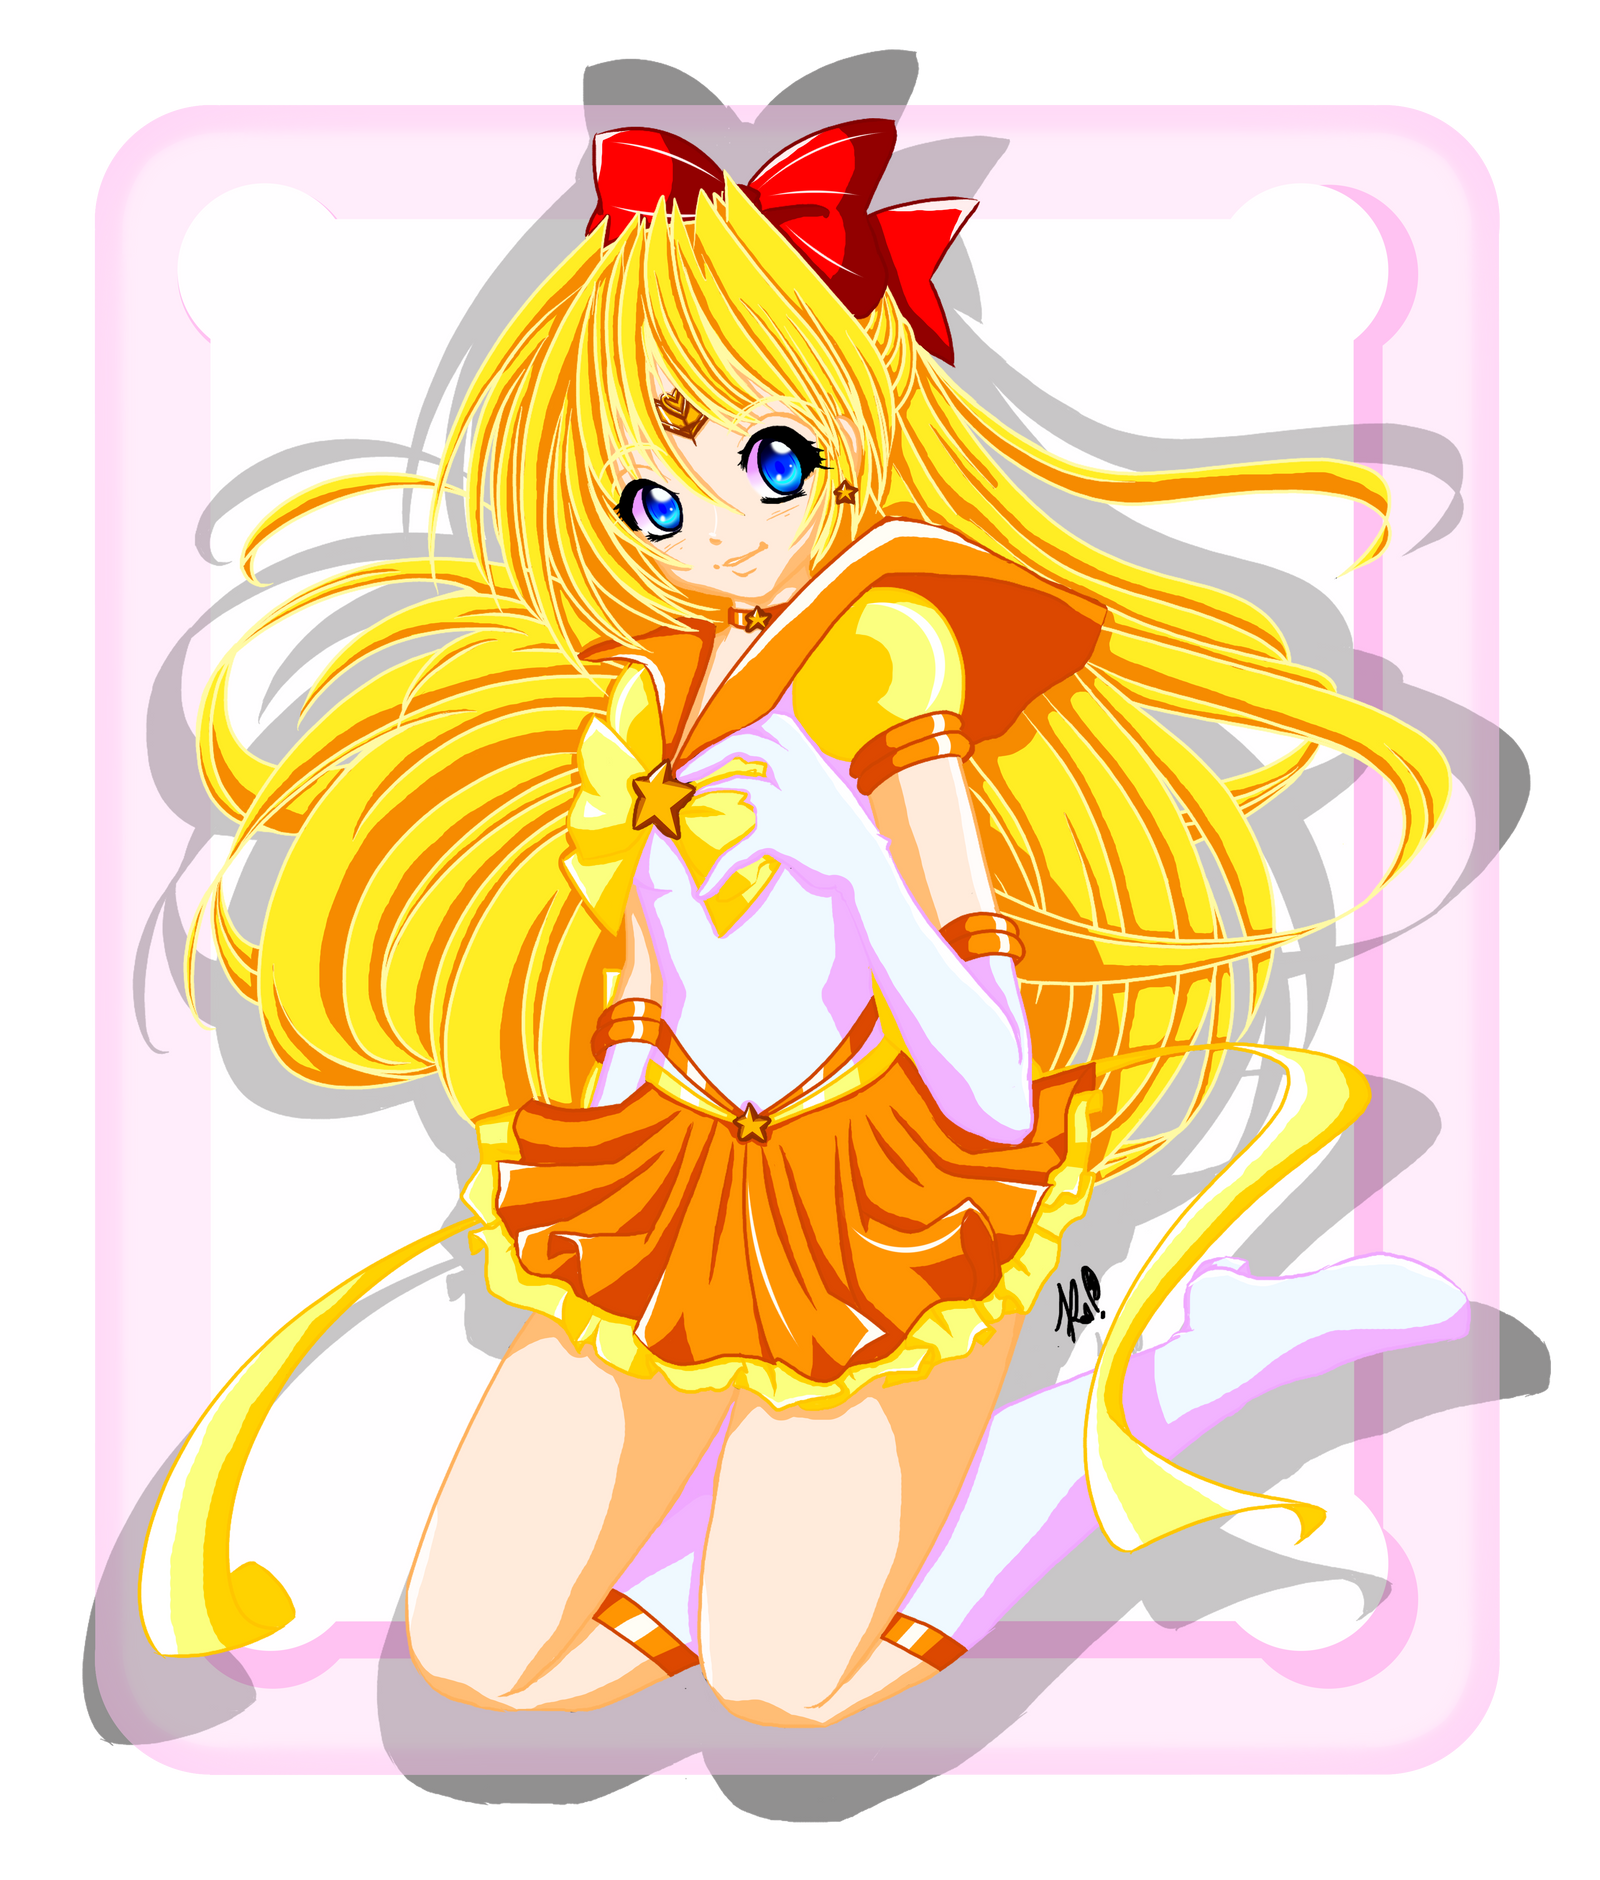 Eternal Sailor Venus by KazenoShun